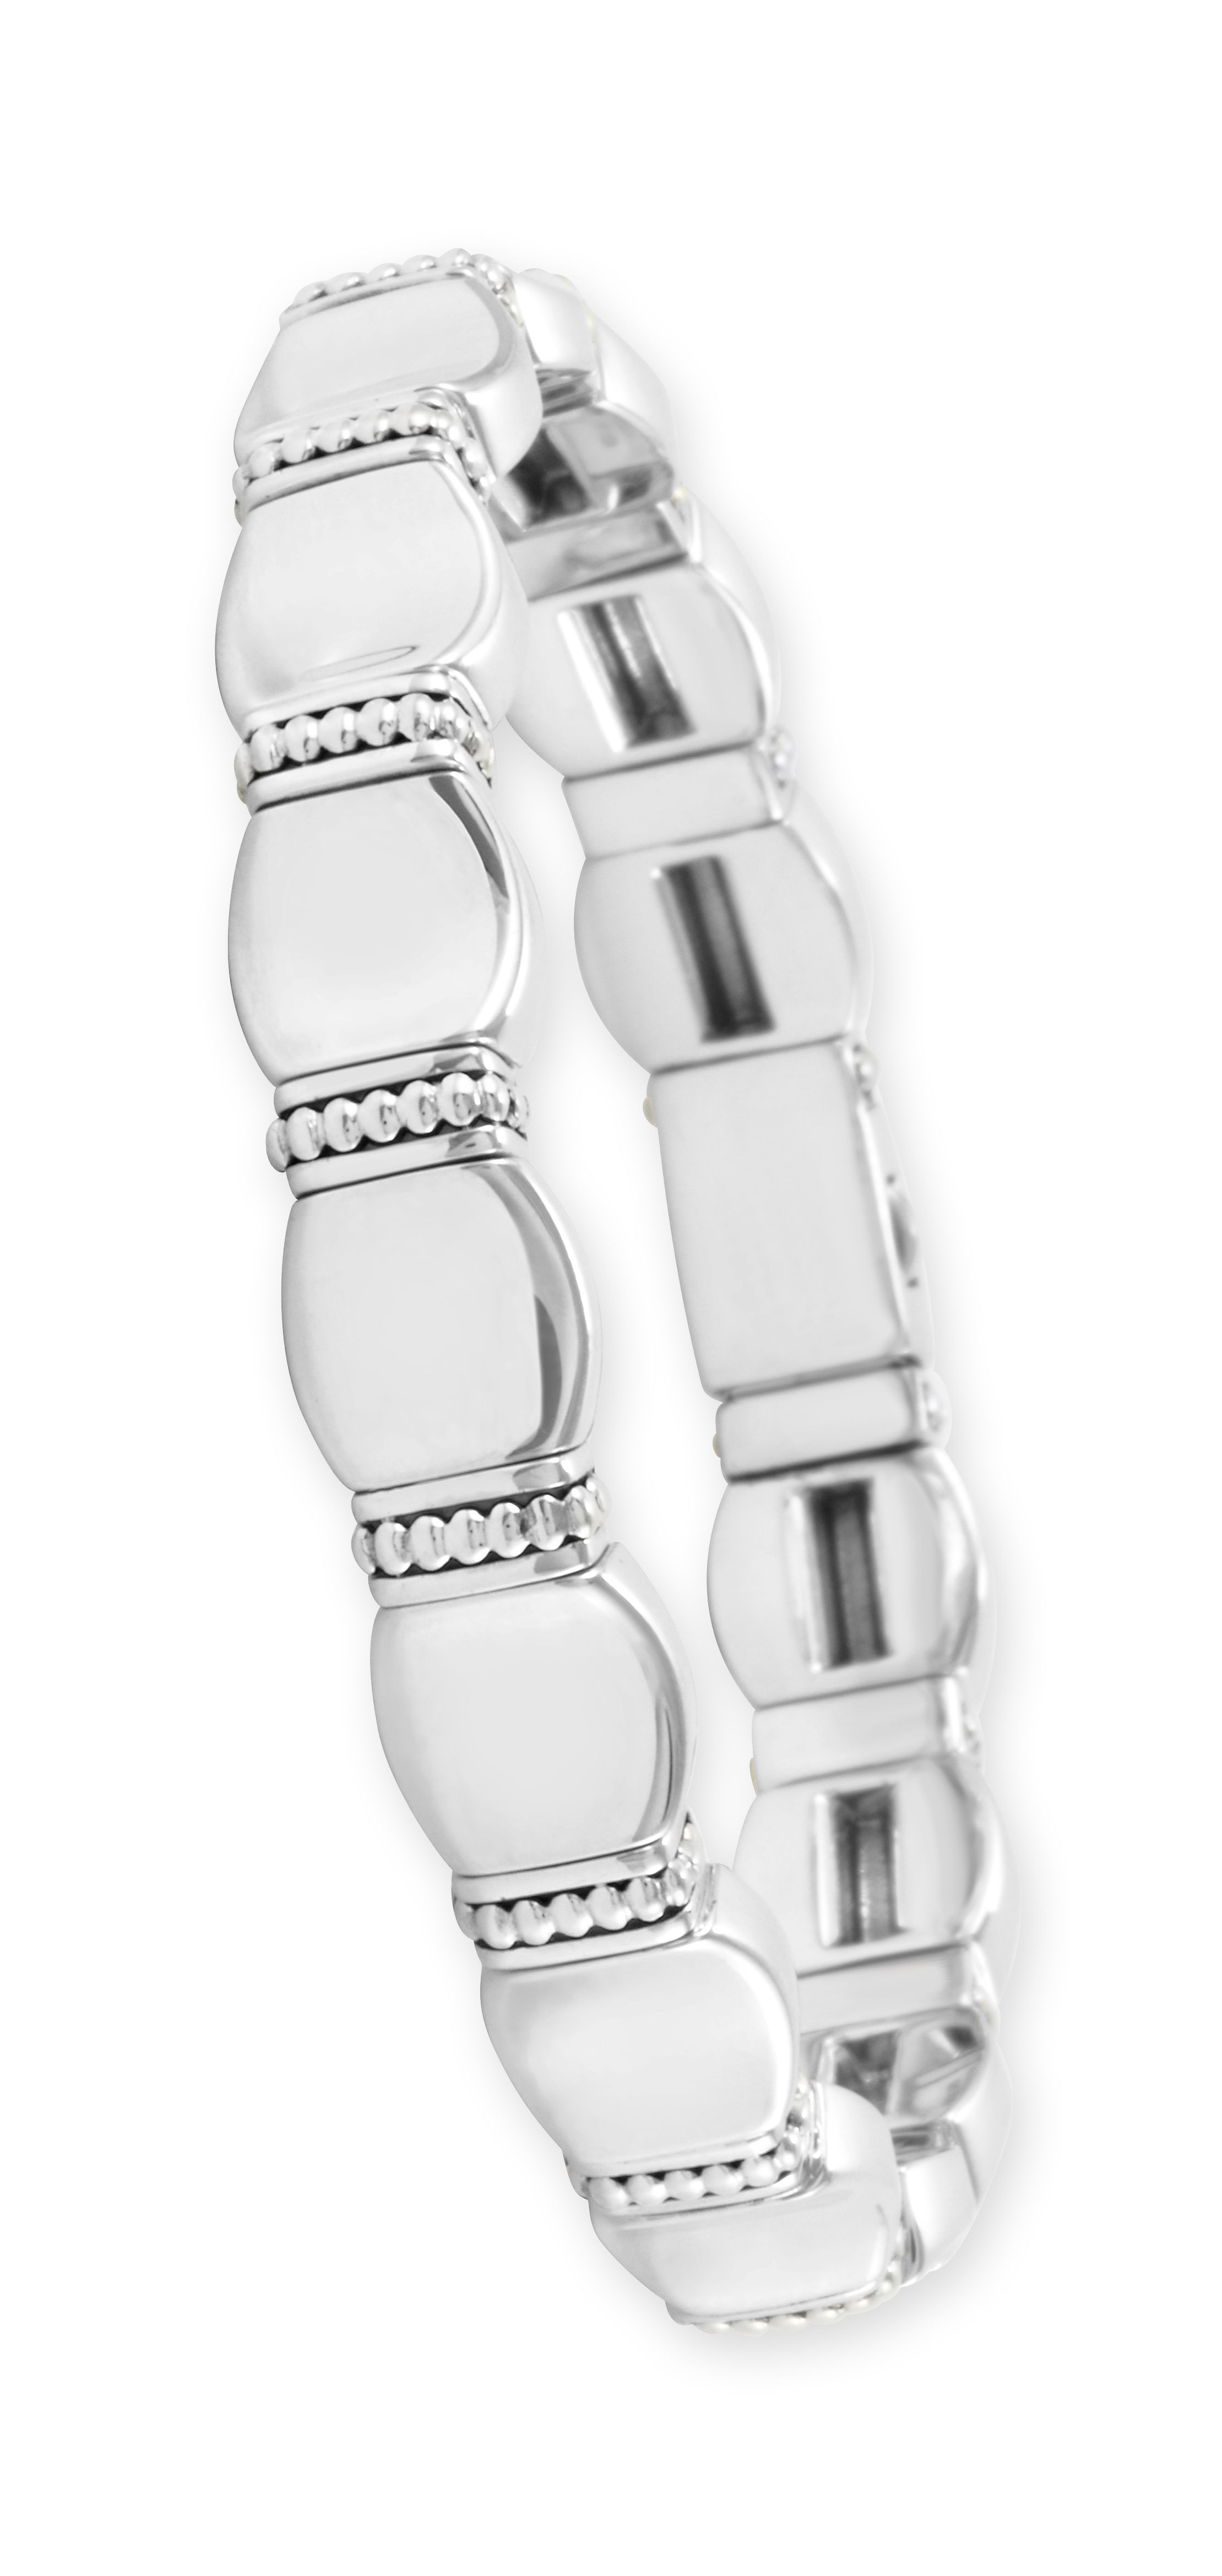 LAGOS Jewelry   Imagine Sterling Silver Bracelet. Ideal for ...